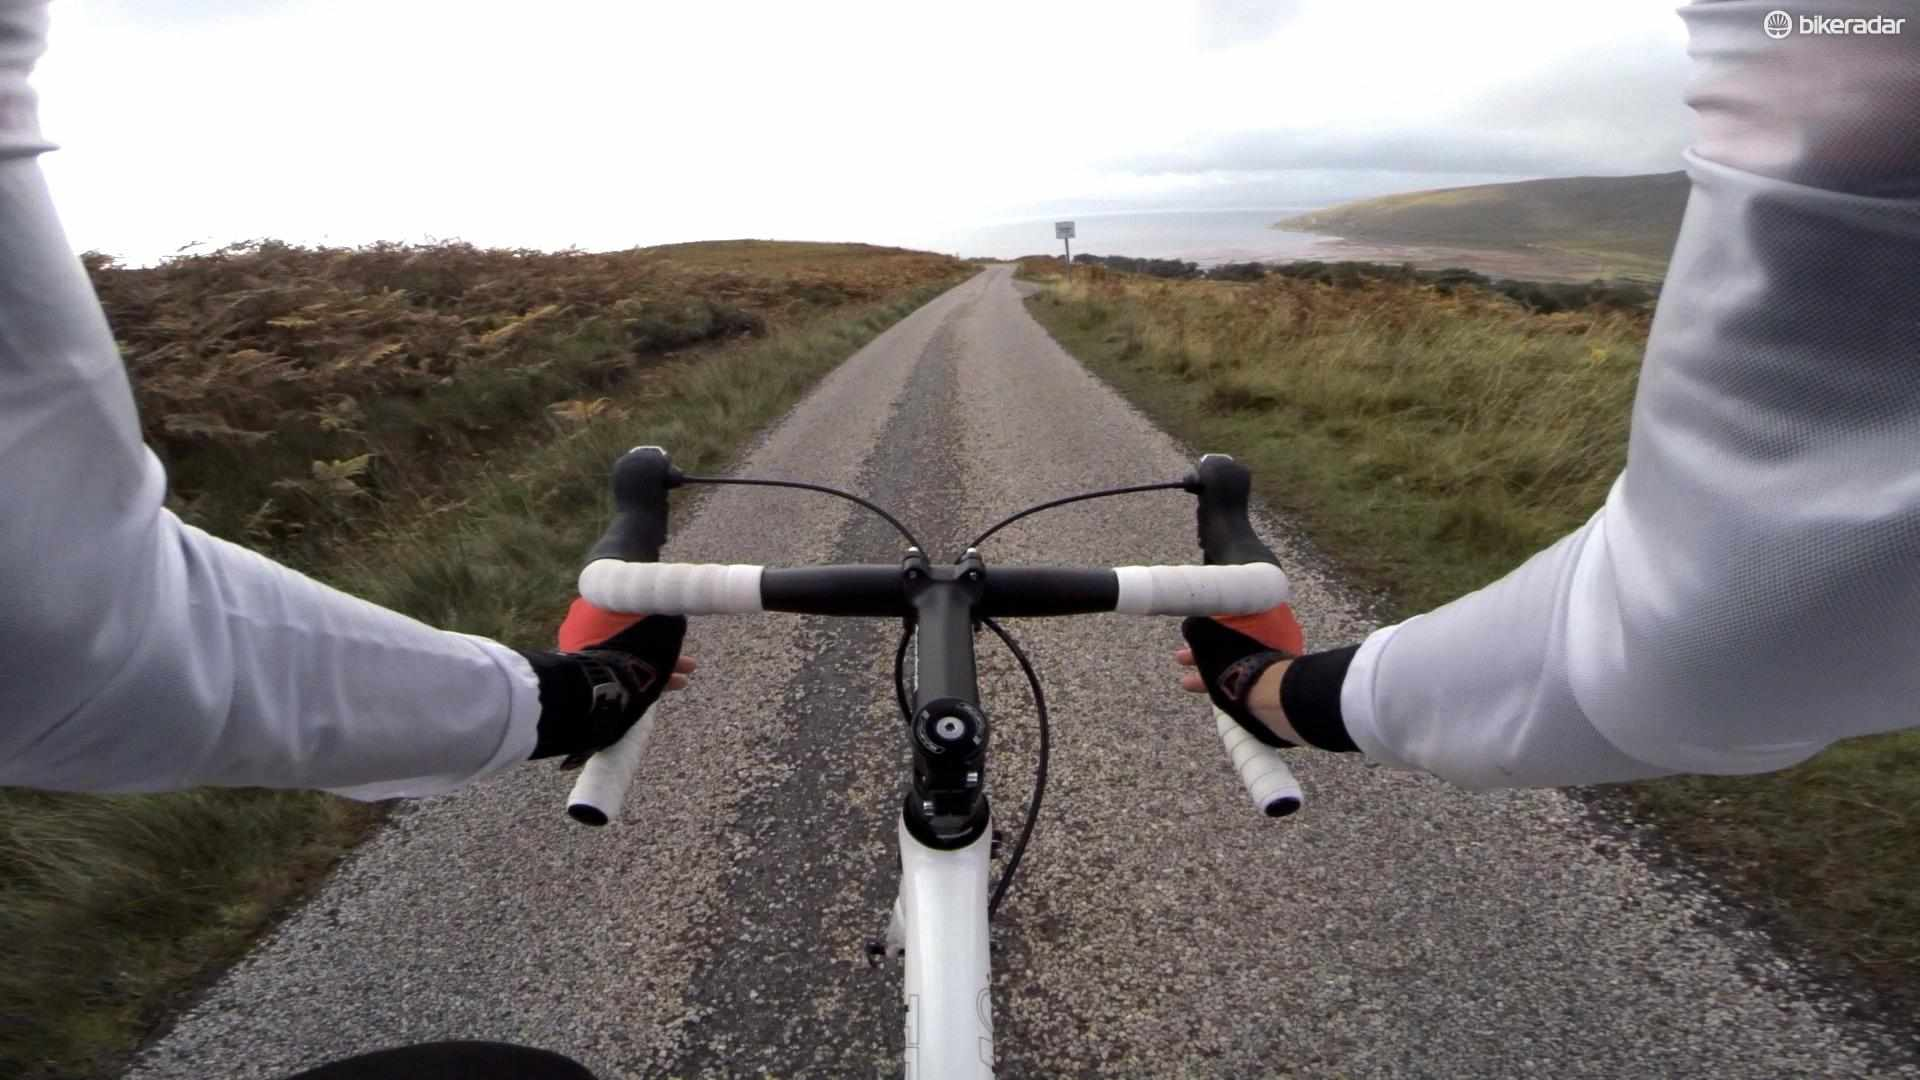 Our video guide will tell you everything you need to know about getting into road cycling